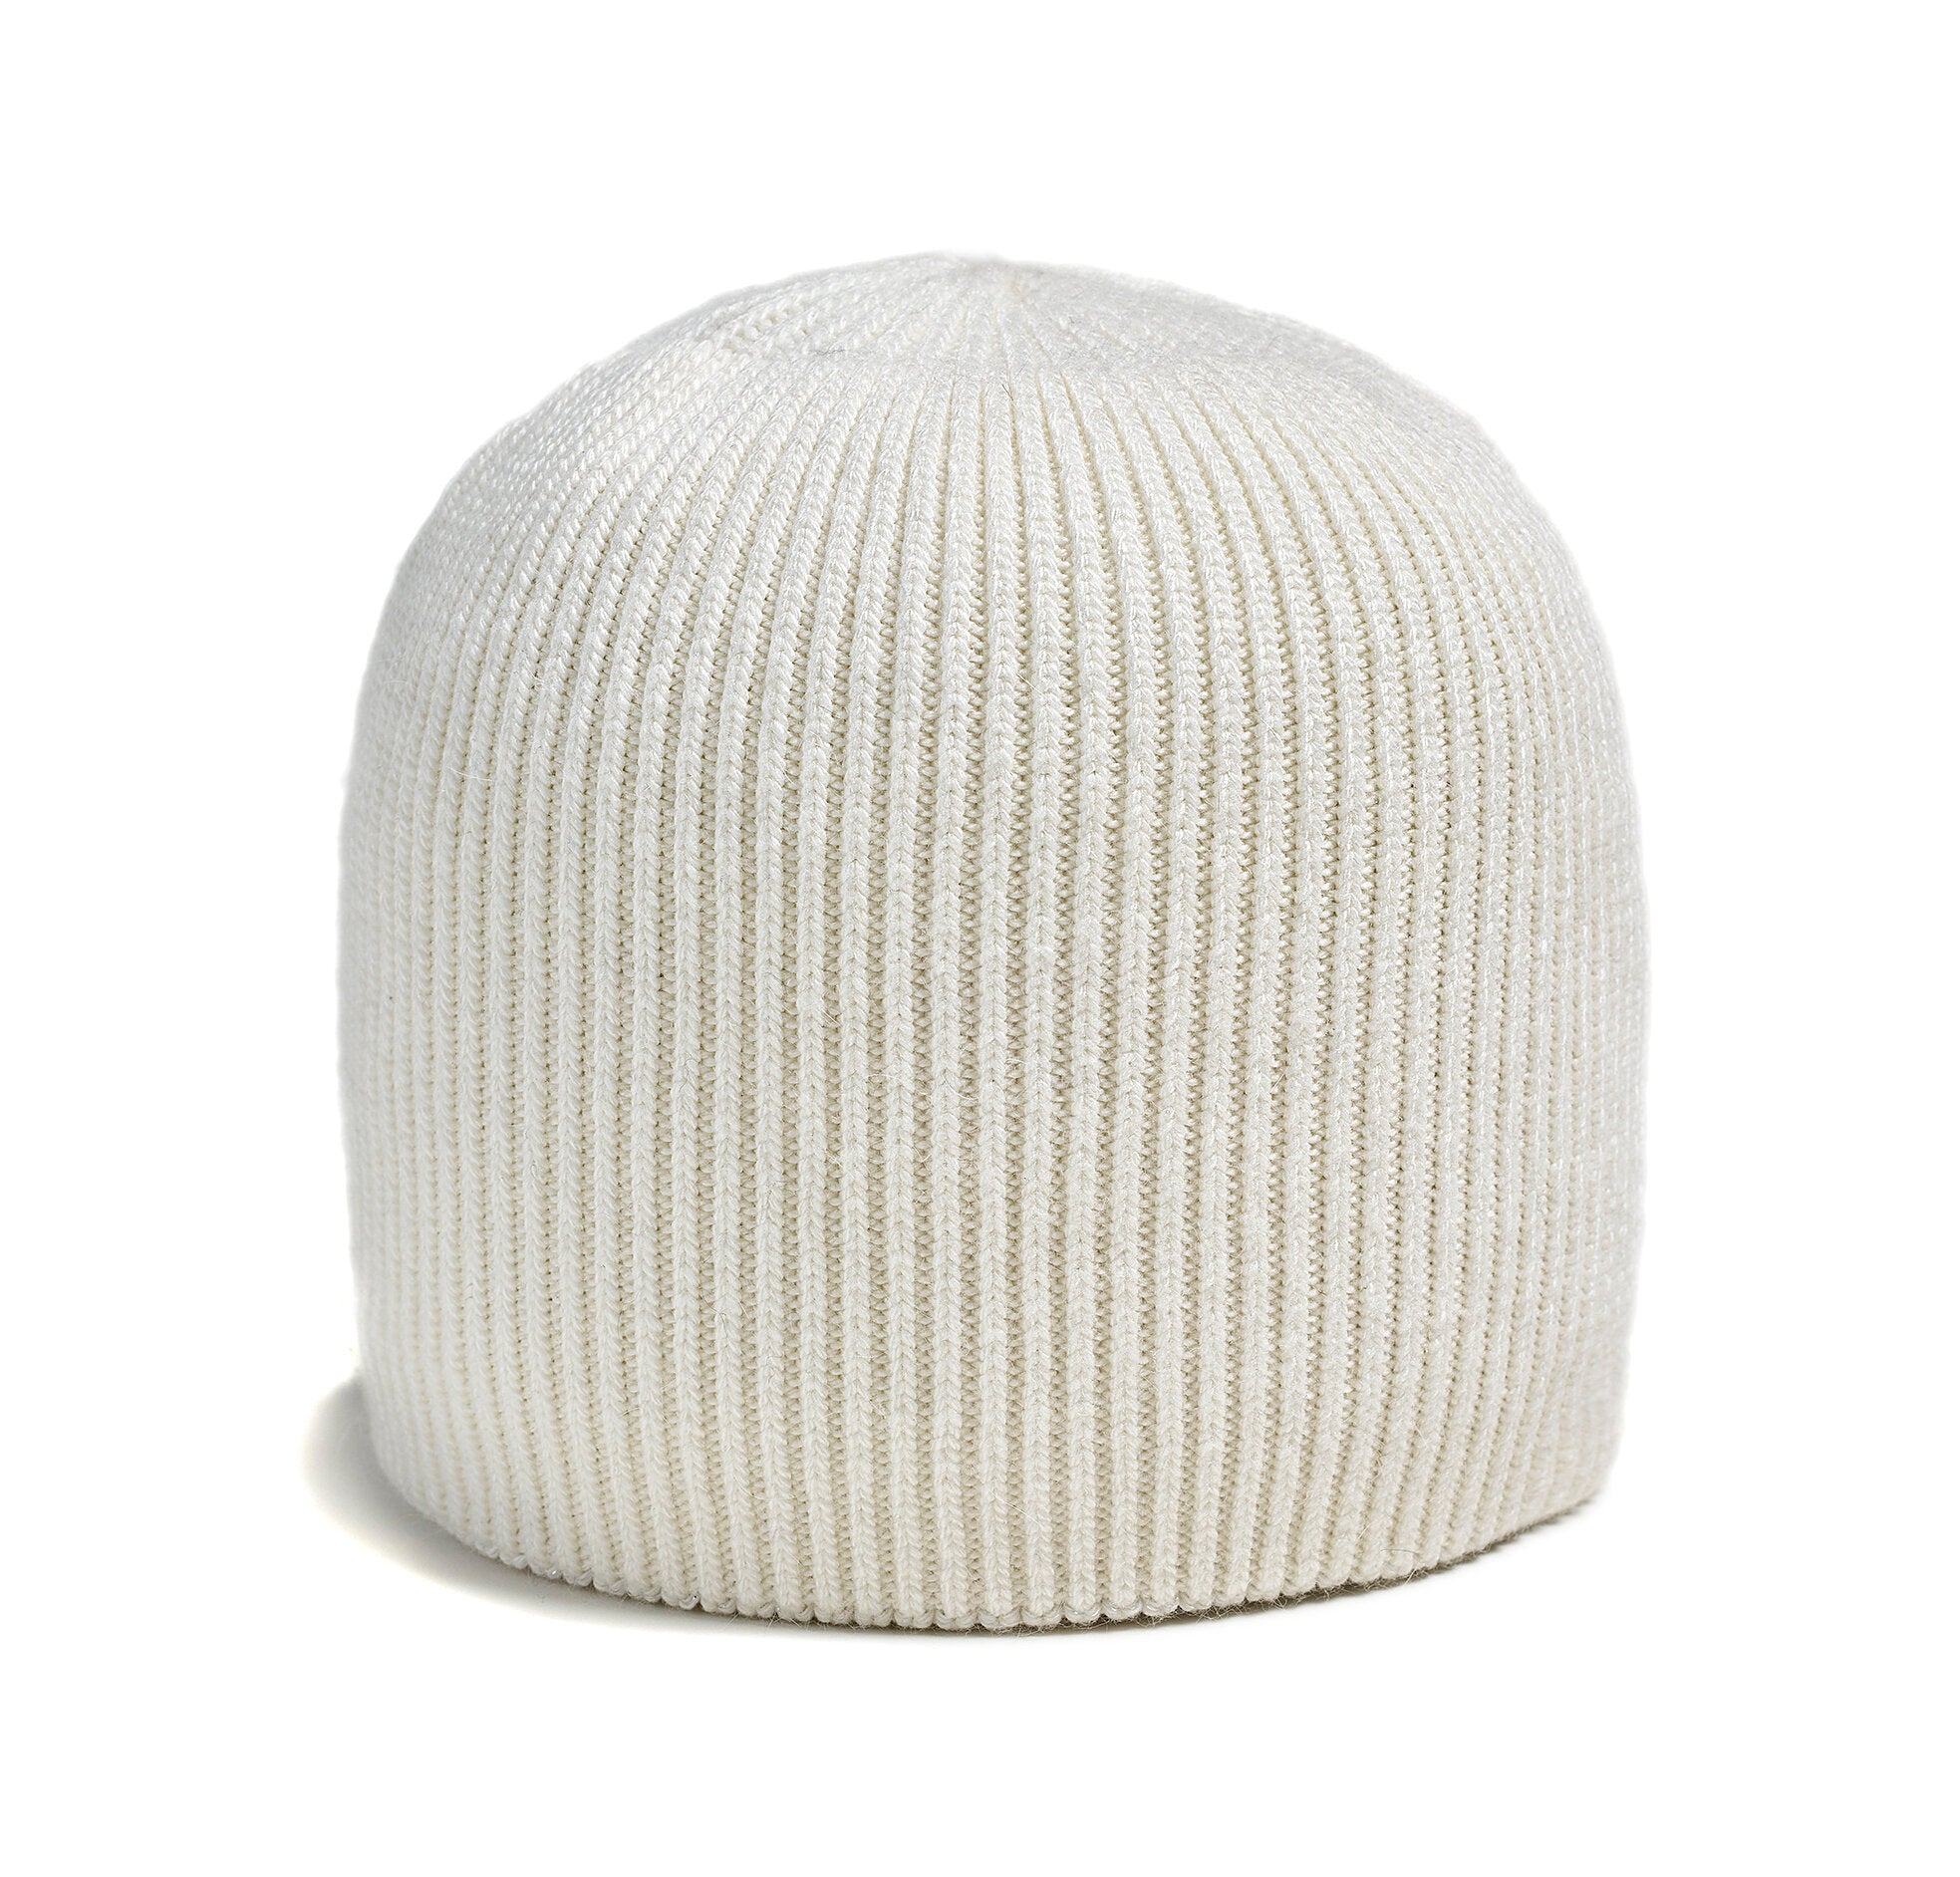 BRUME - GALATEA HAT IN WHITE